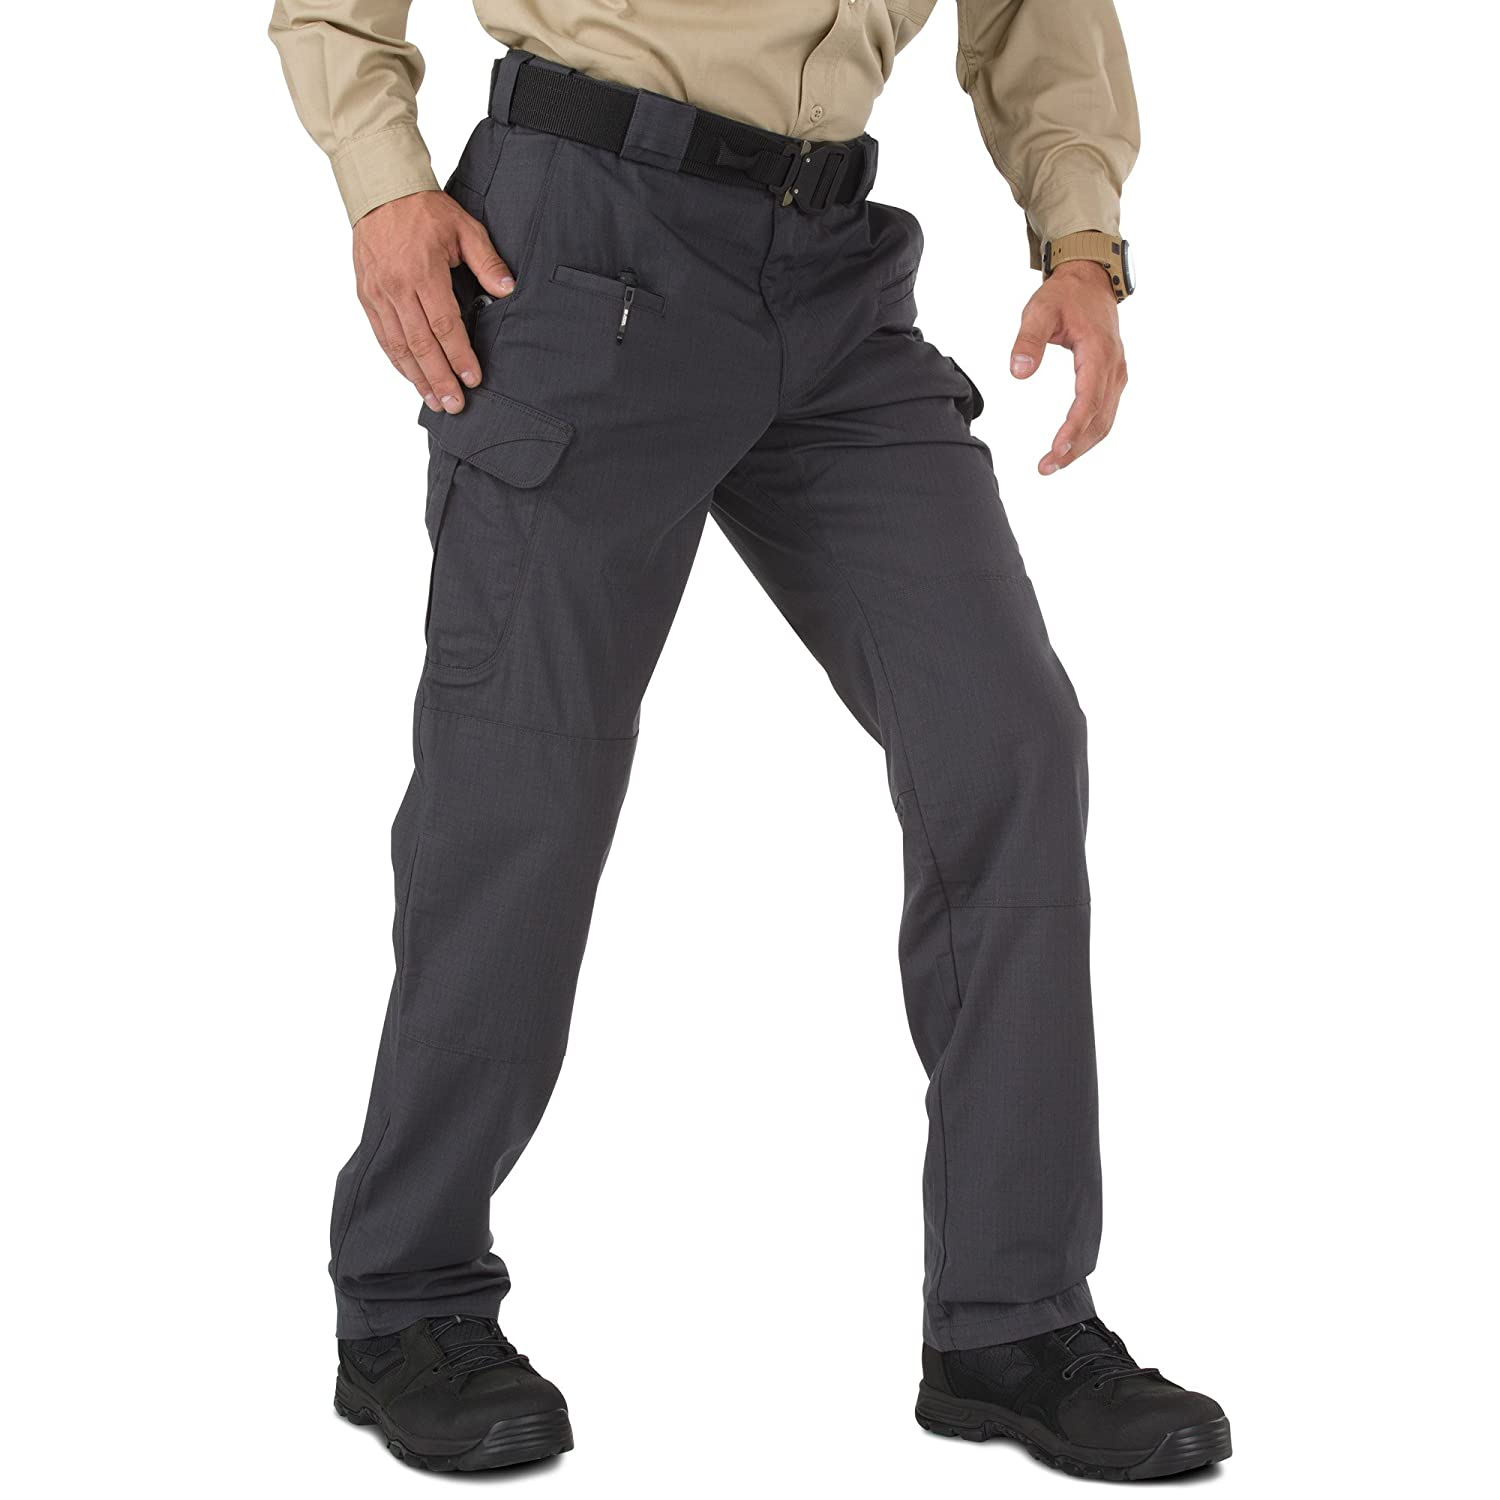 Charcoal 42Wx36L 5.11 STRYKE Tactical Pant, Style 74369